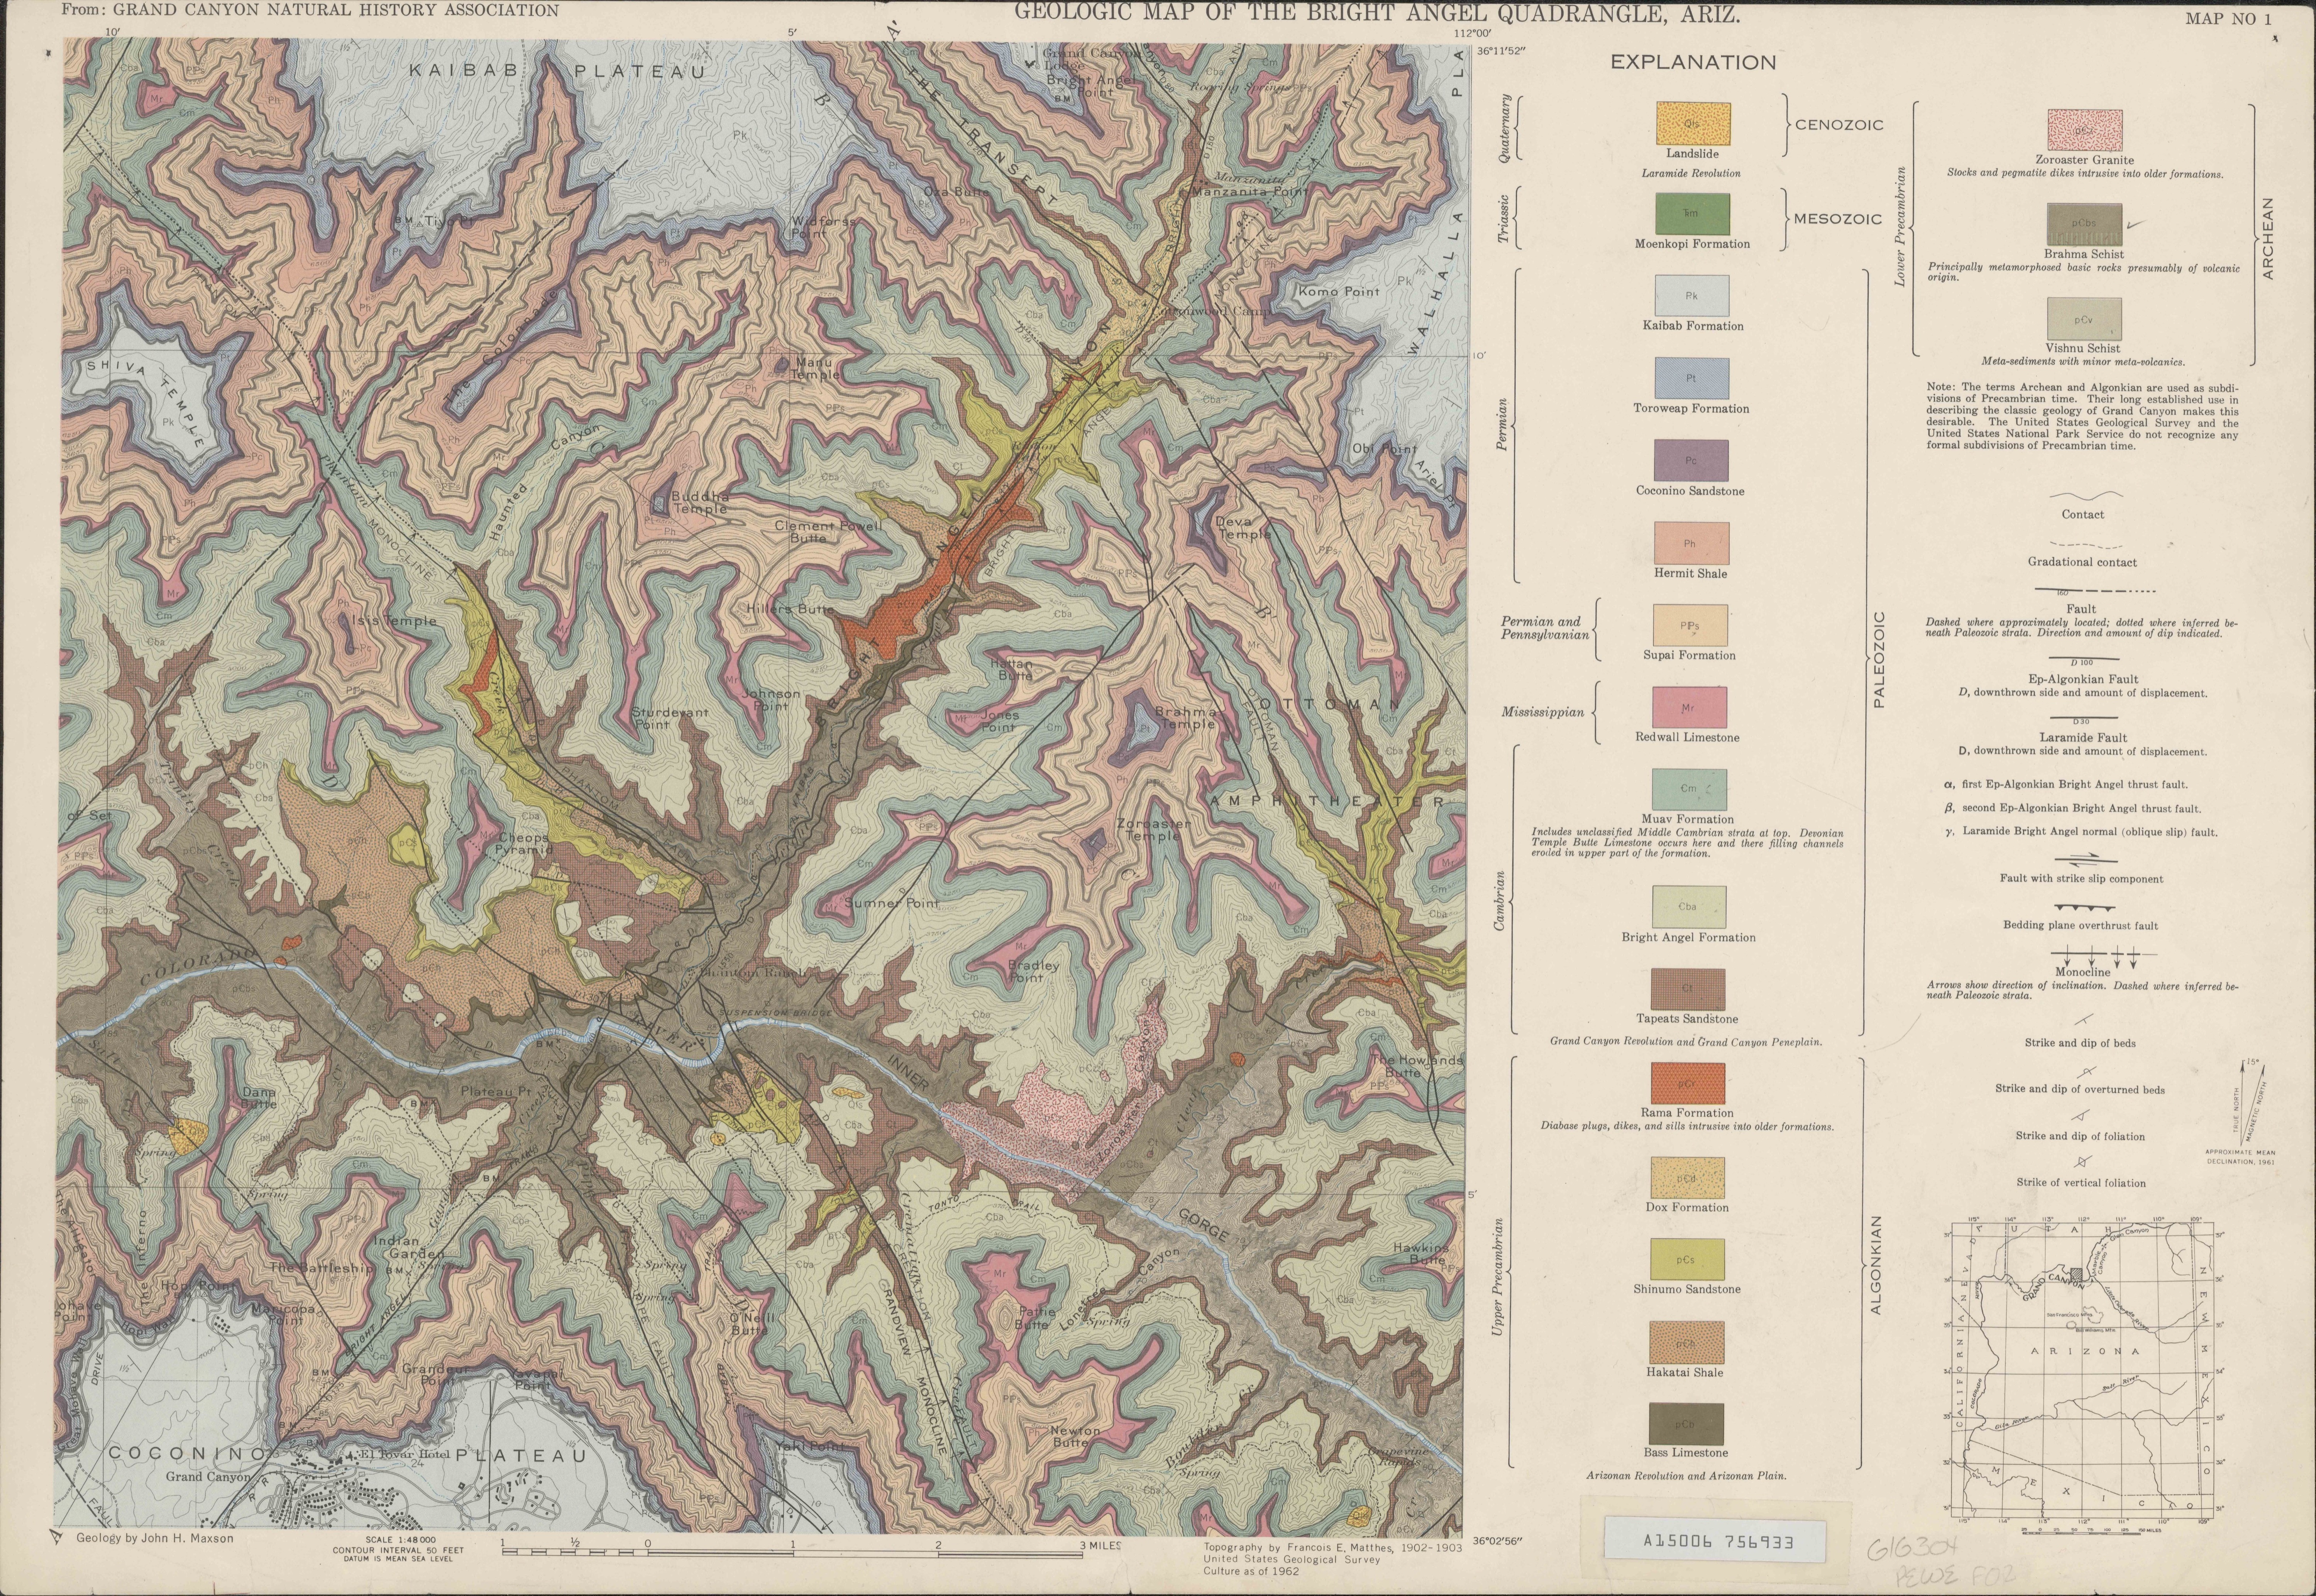 Unfolding Stories In Maps Of The Grand Canyon